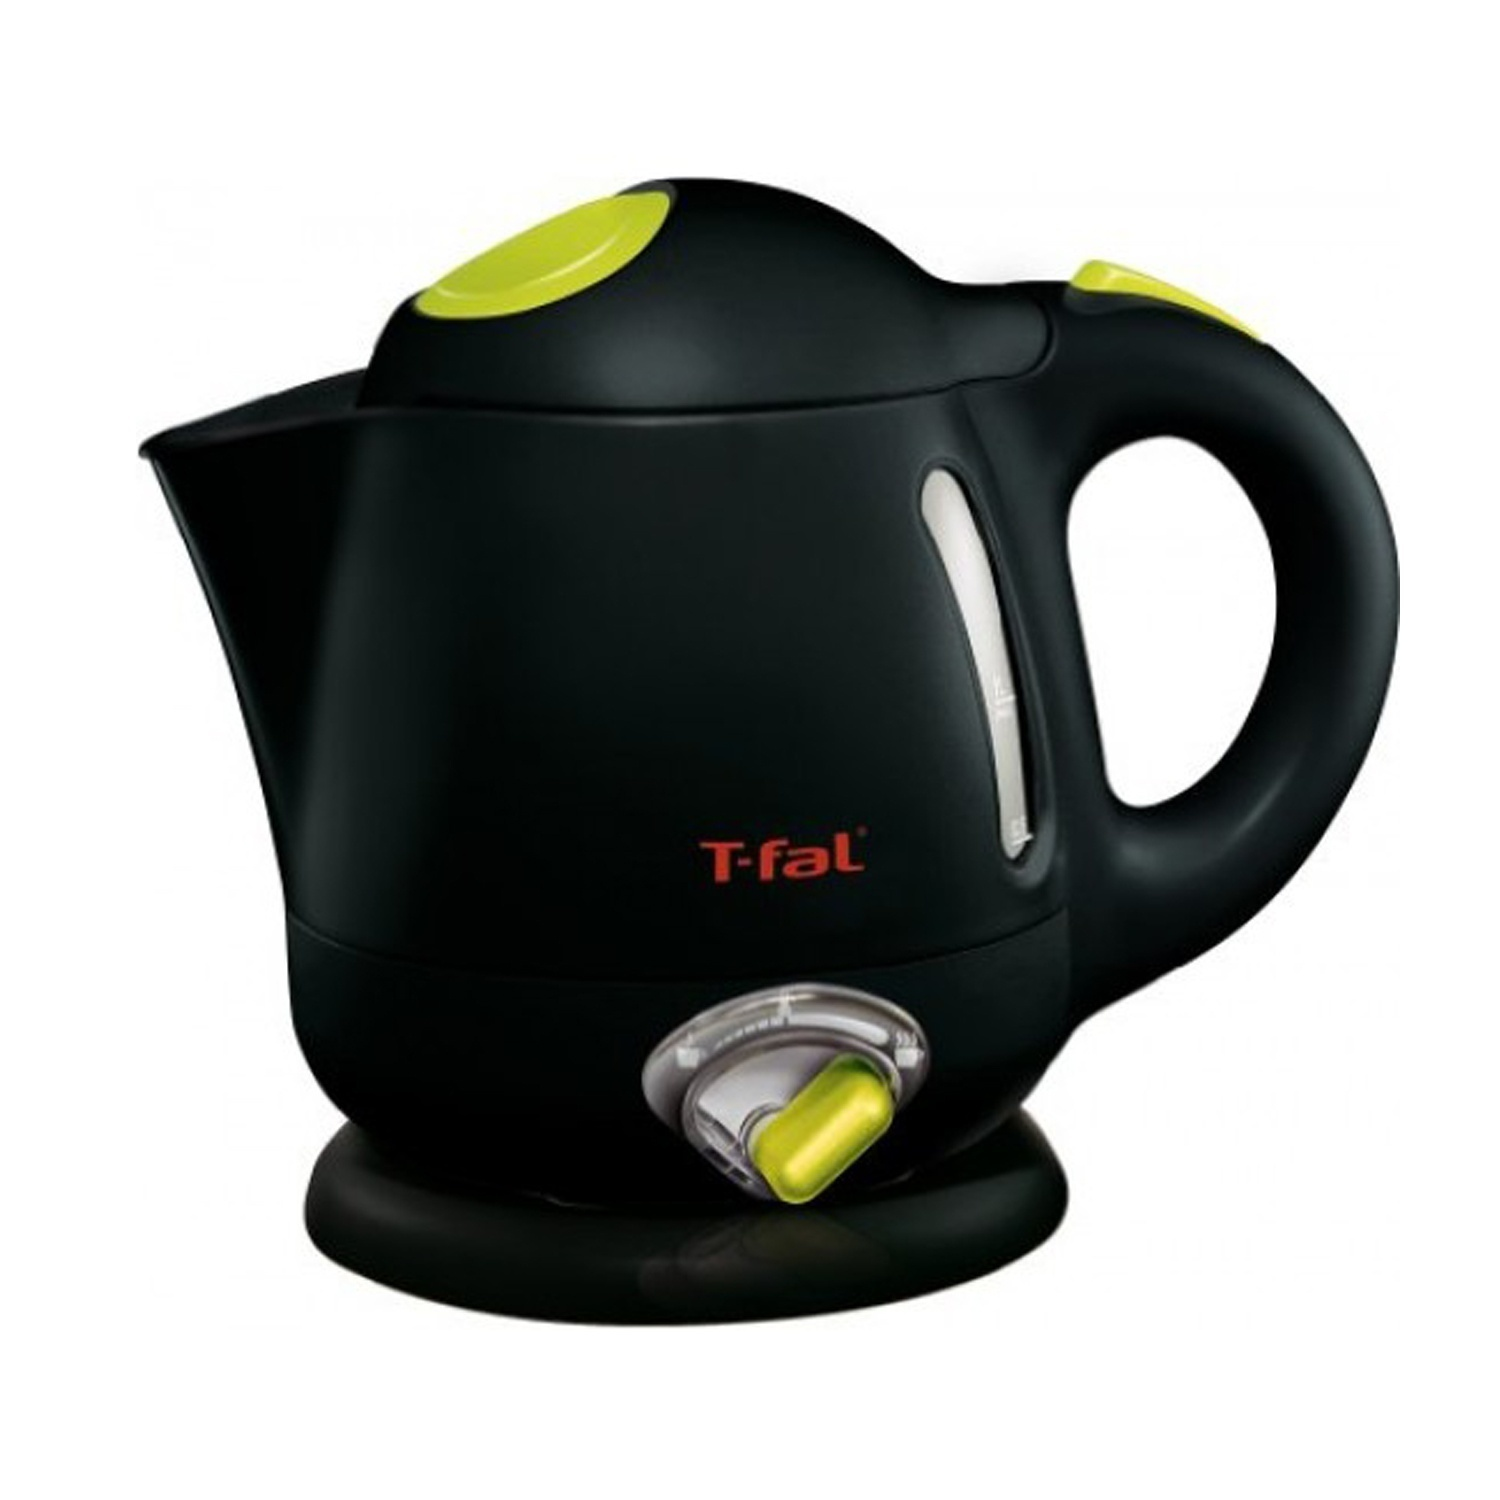 T-fal BF6138 Balanced Living 4-Cup Electric Kettle